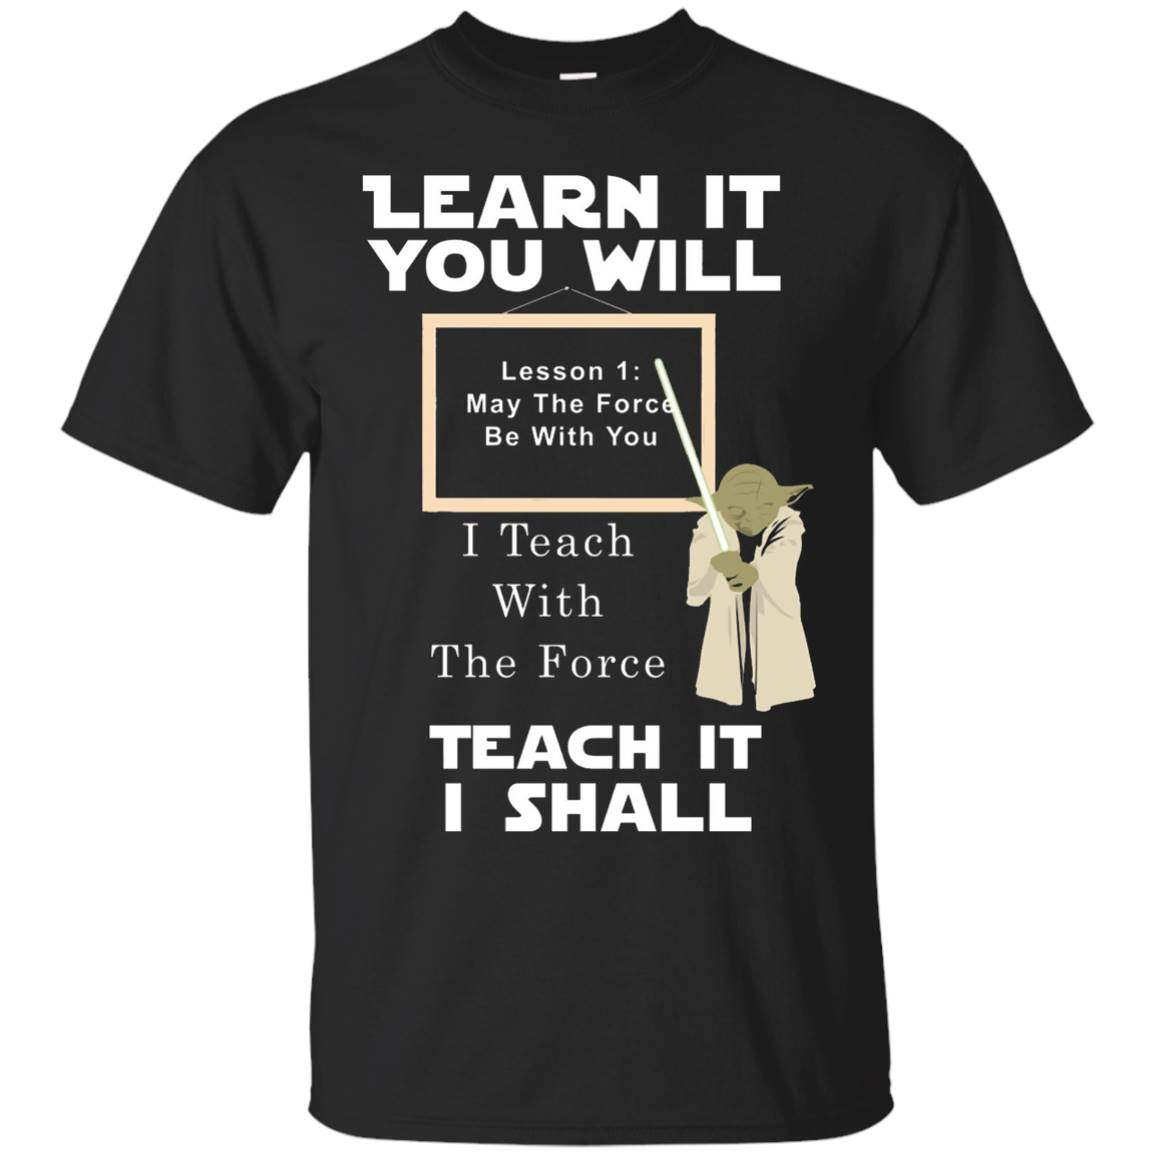 Learn It You Will Teach It I Shall T-Shirt May The Force..